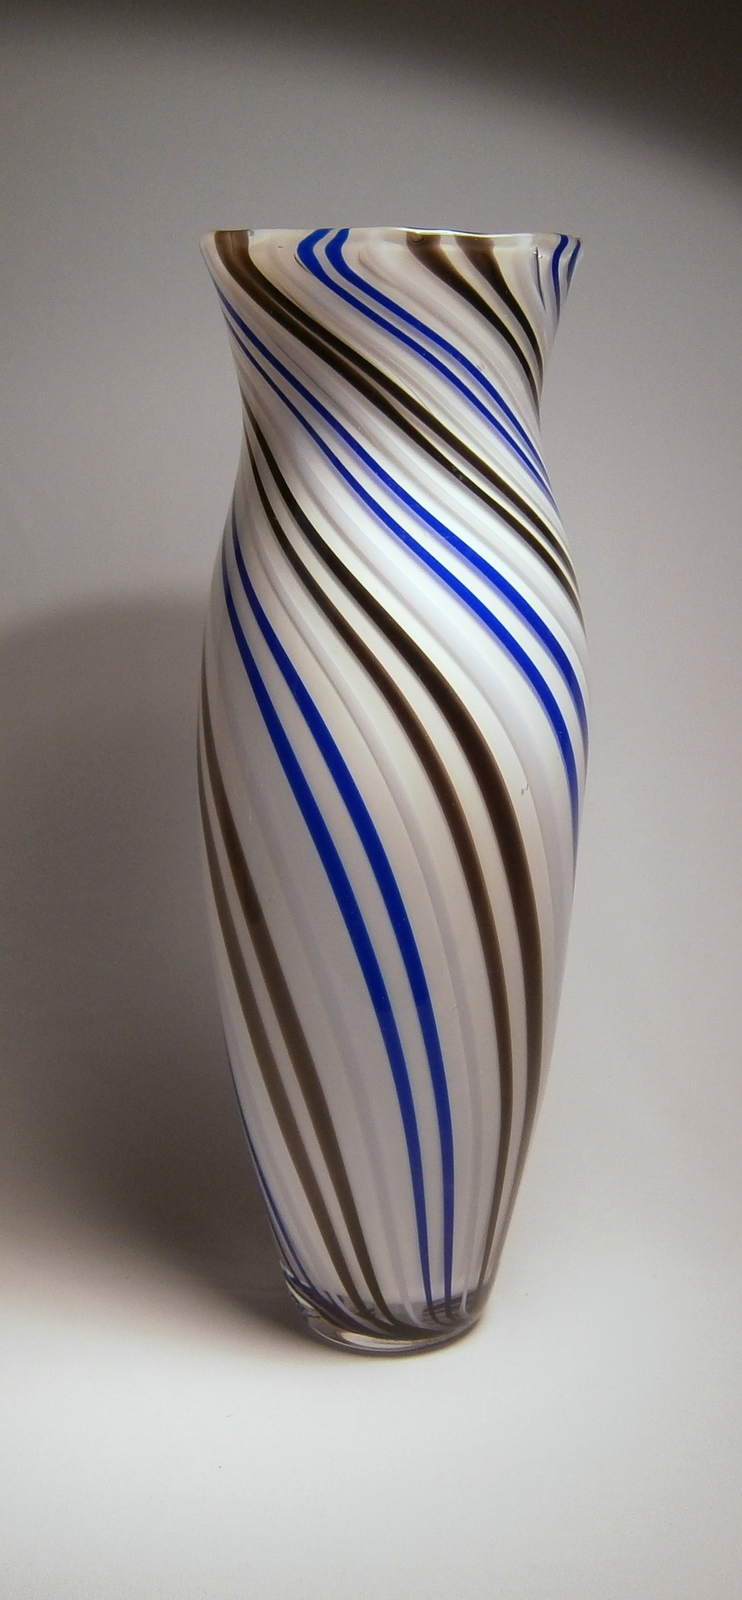 Striped Cane Vase (101)